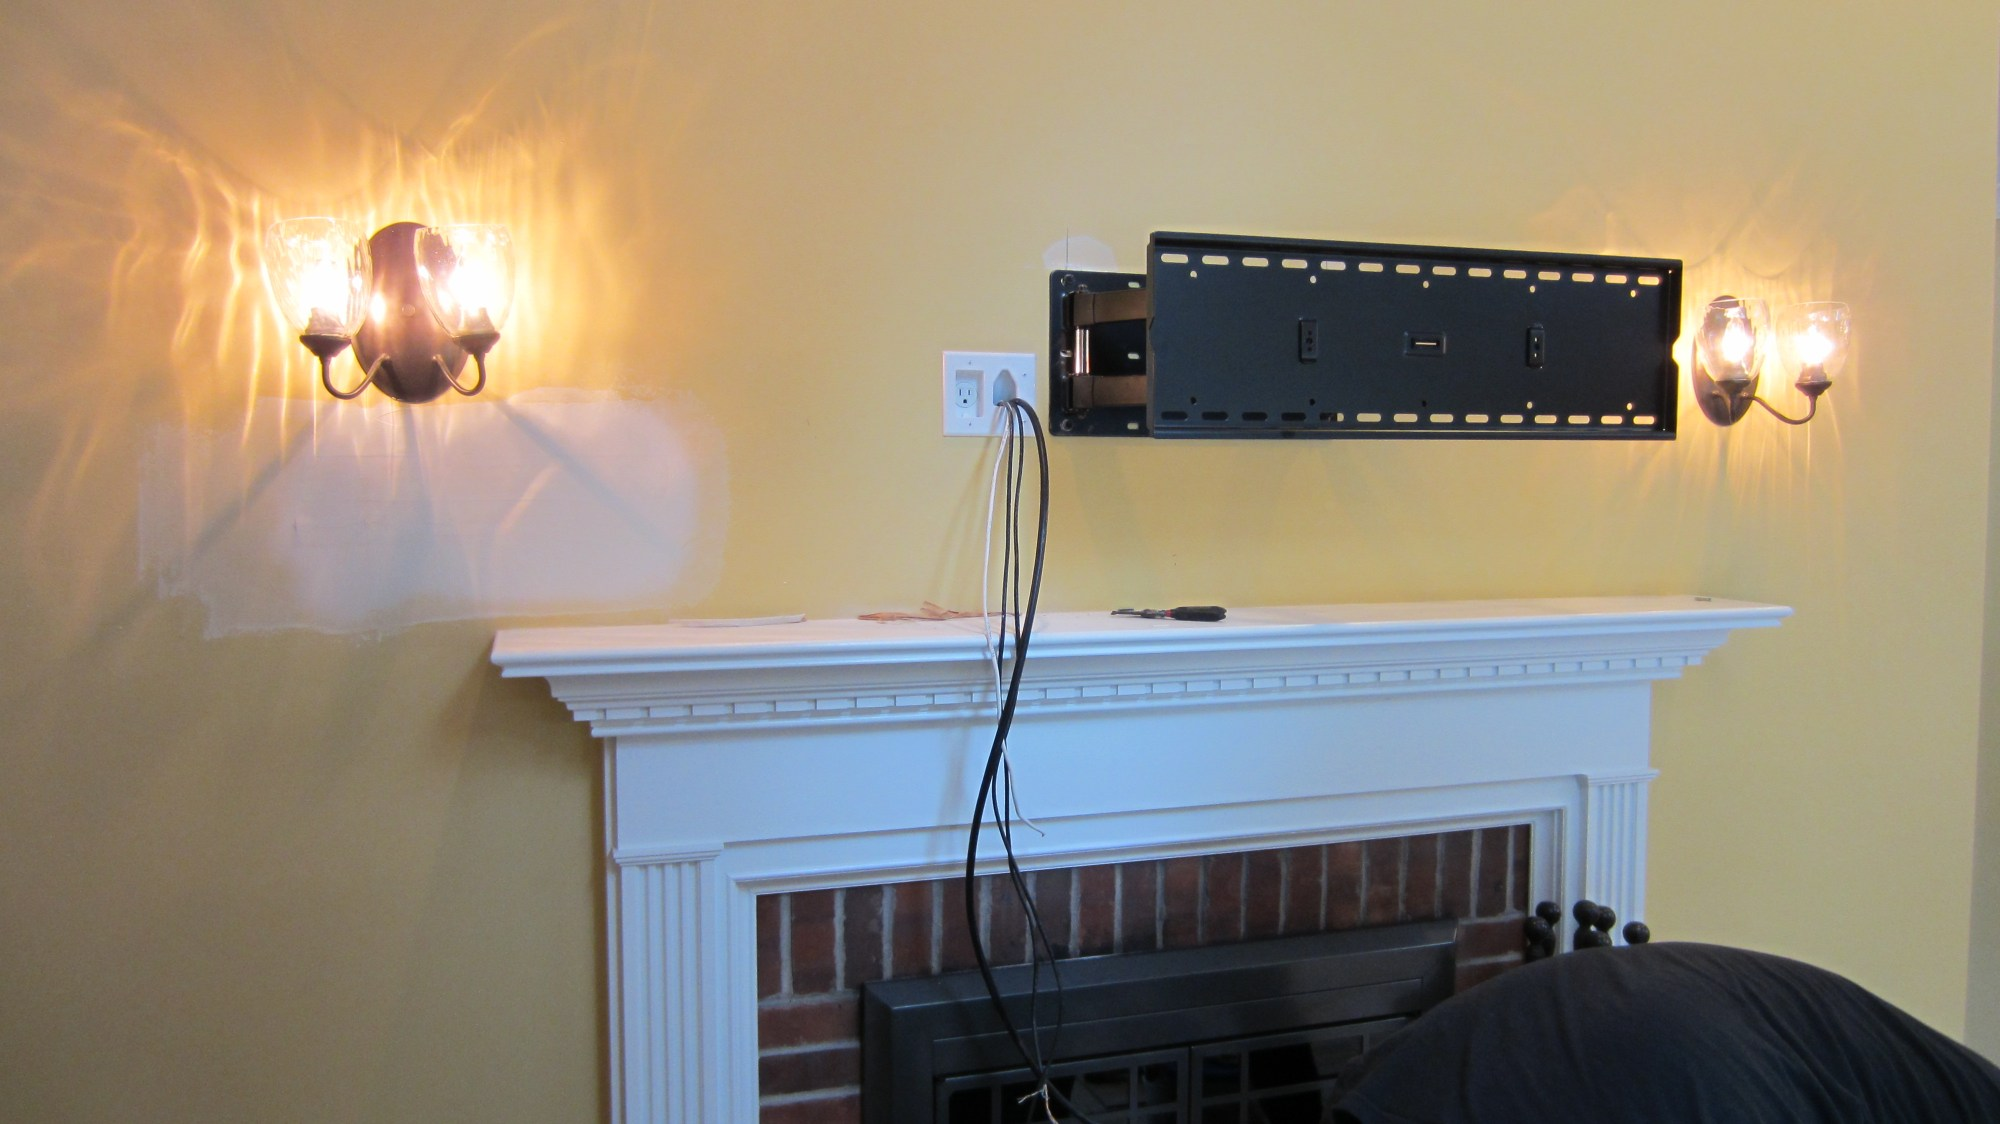 hight resolution of norwalk ct mount tv above fireplace home theater wall mount electric fireplace installing wall mounted fireplace